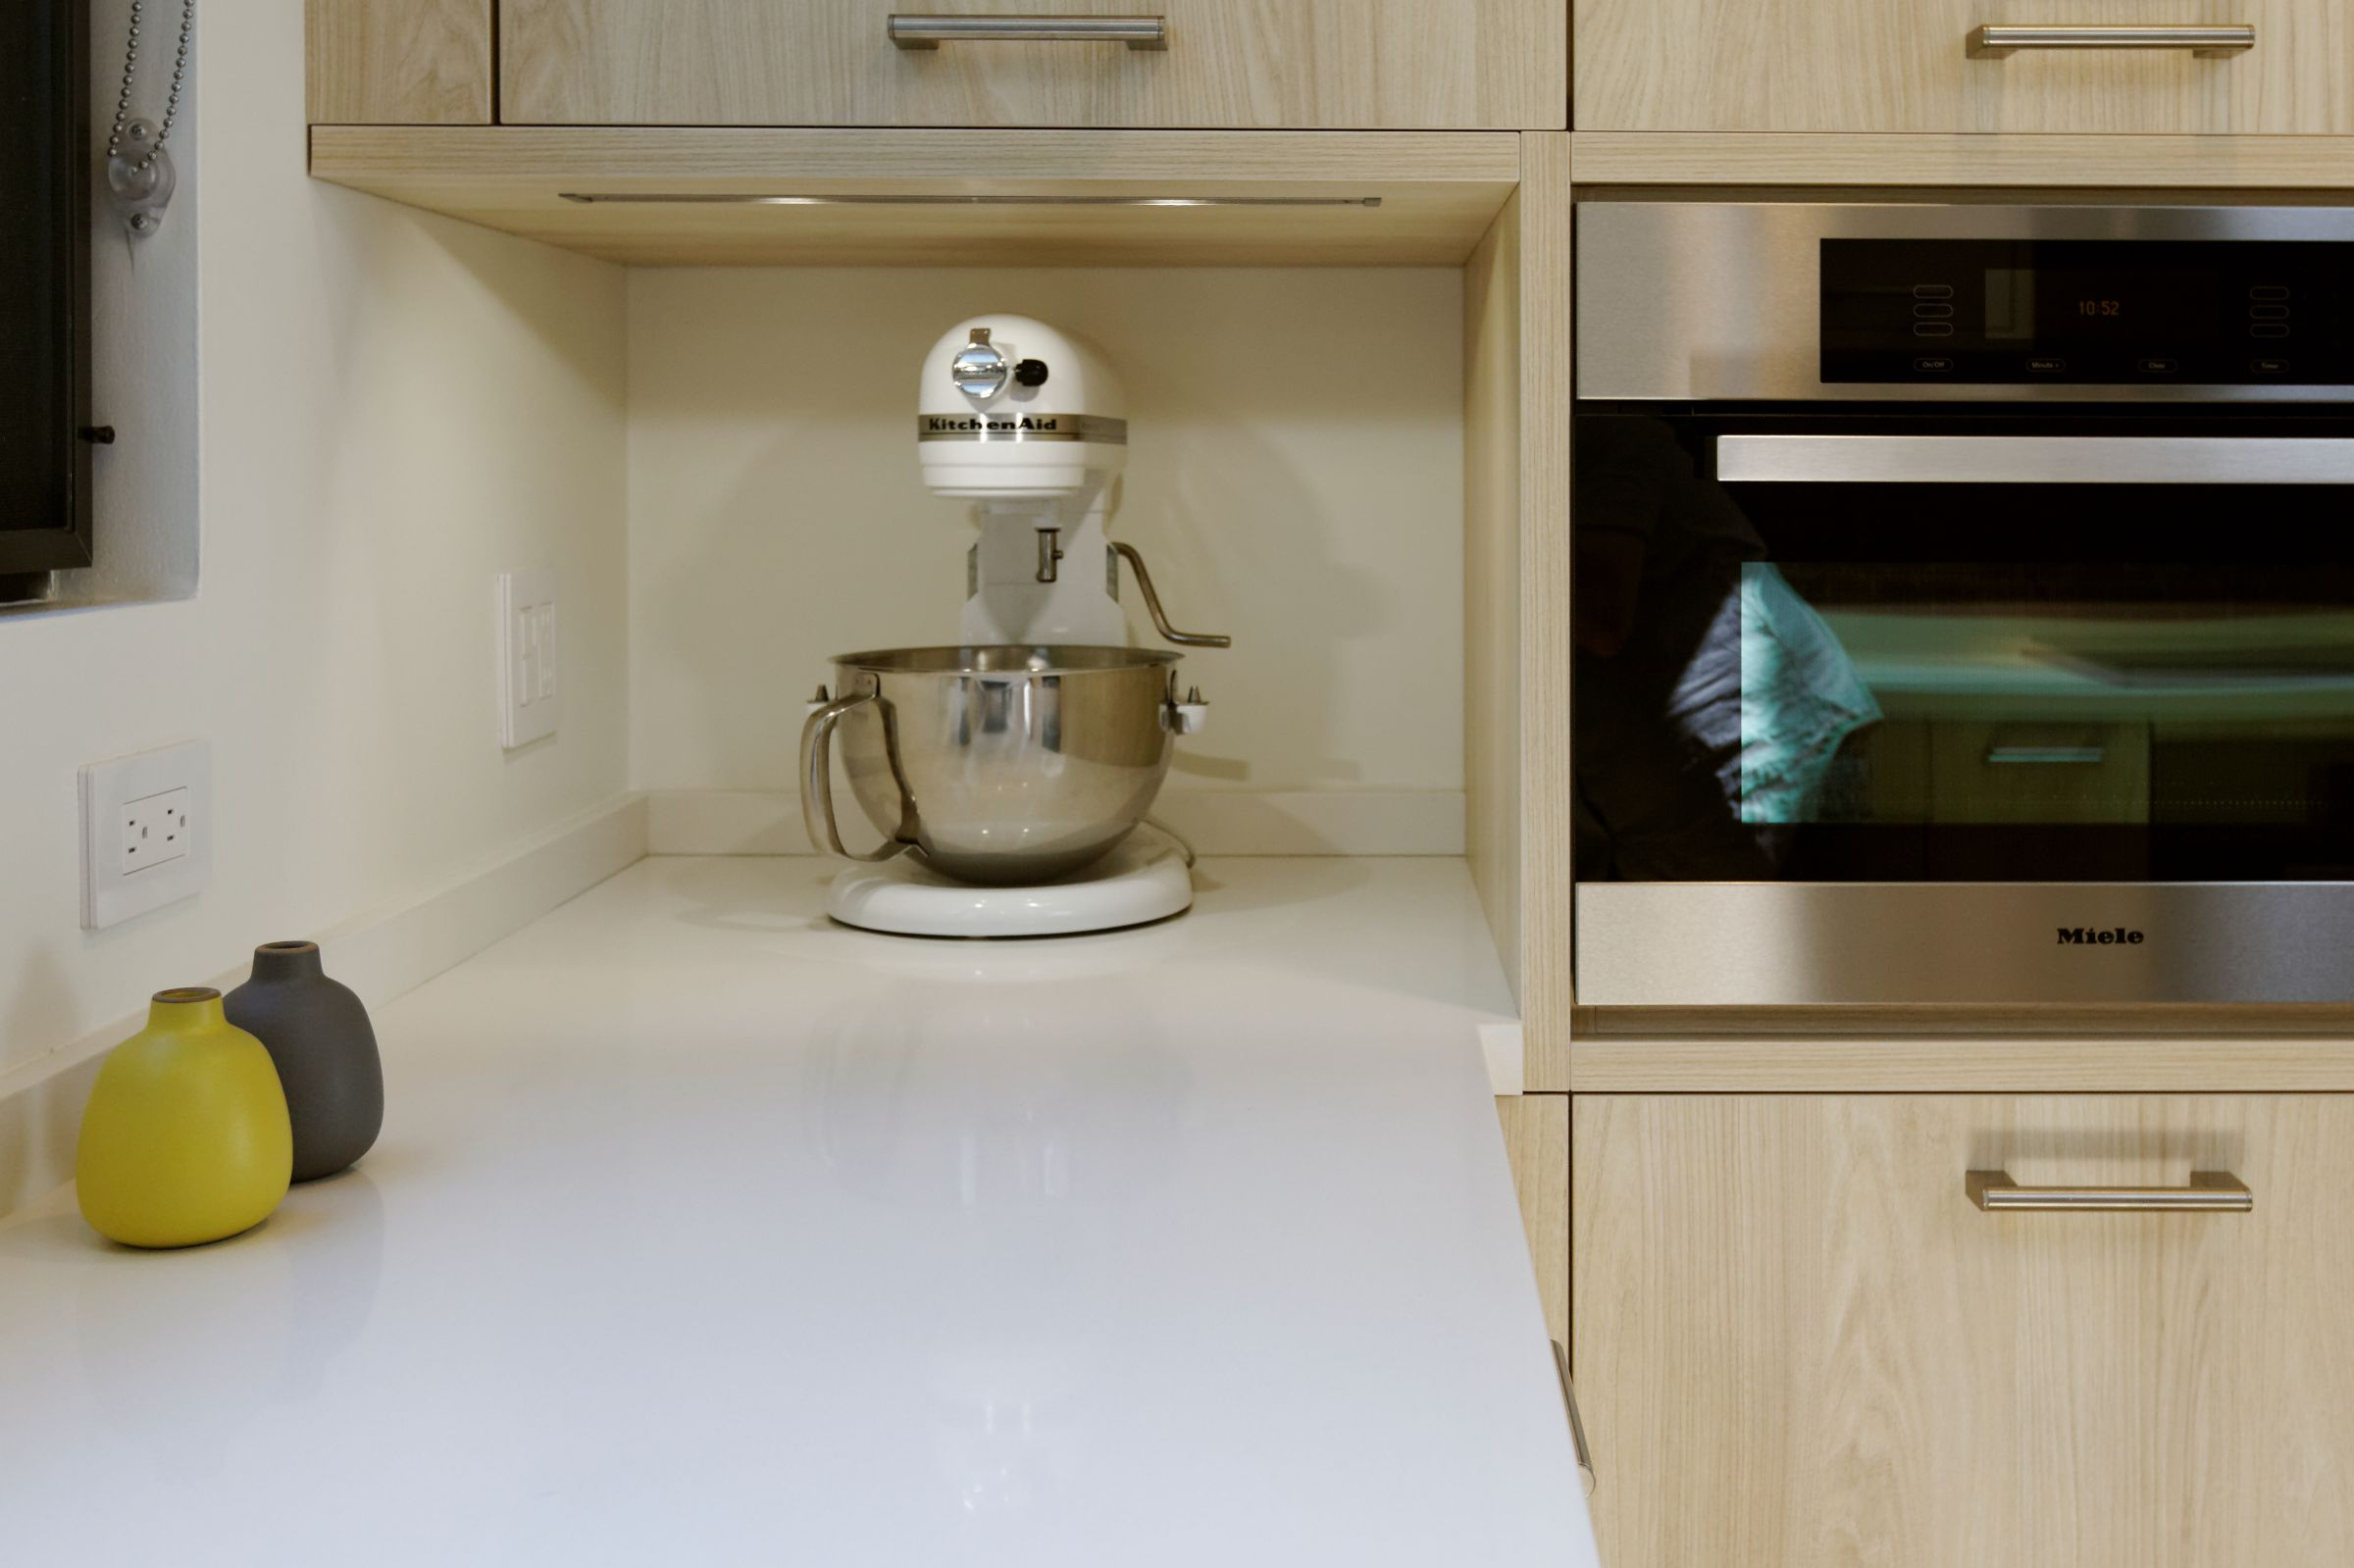 By running the countertop into the appliance niche, it is a breeze to keep the area clean.